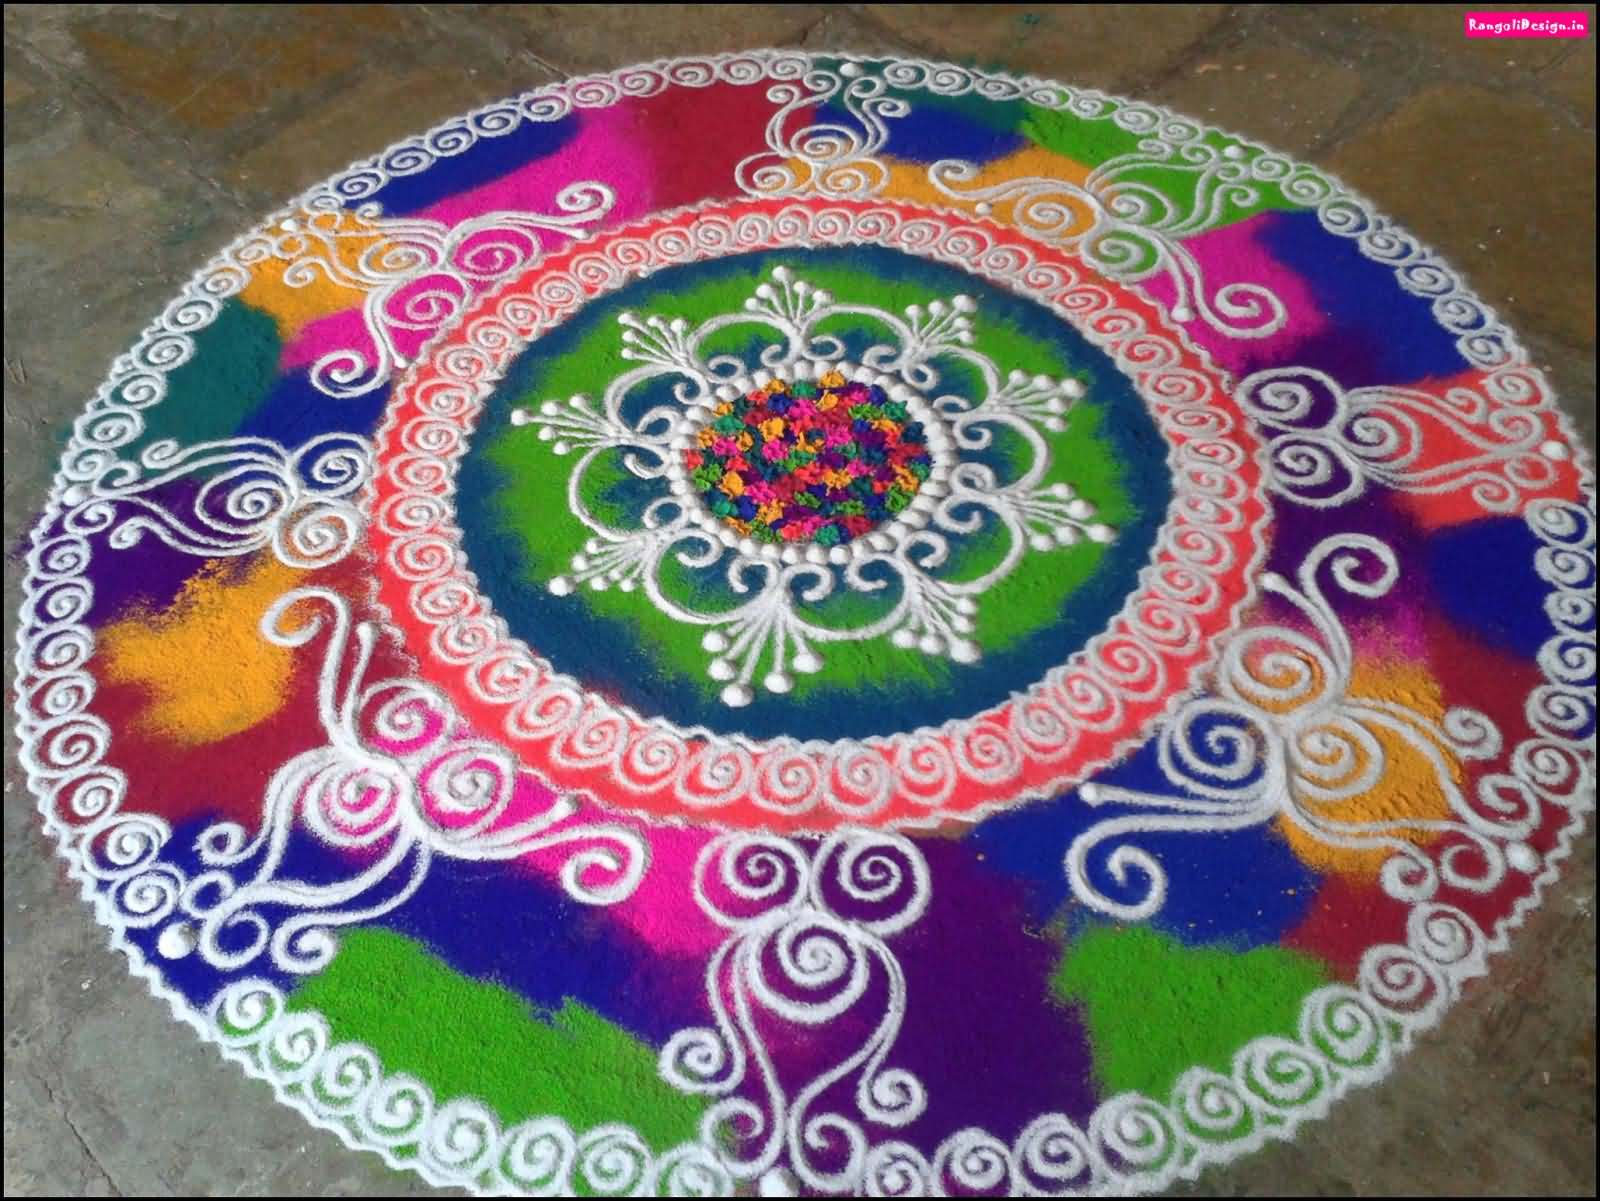 30 Most Beautiful Rangoli Design Ideas For Diwali Decoration